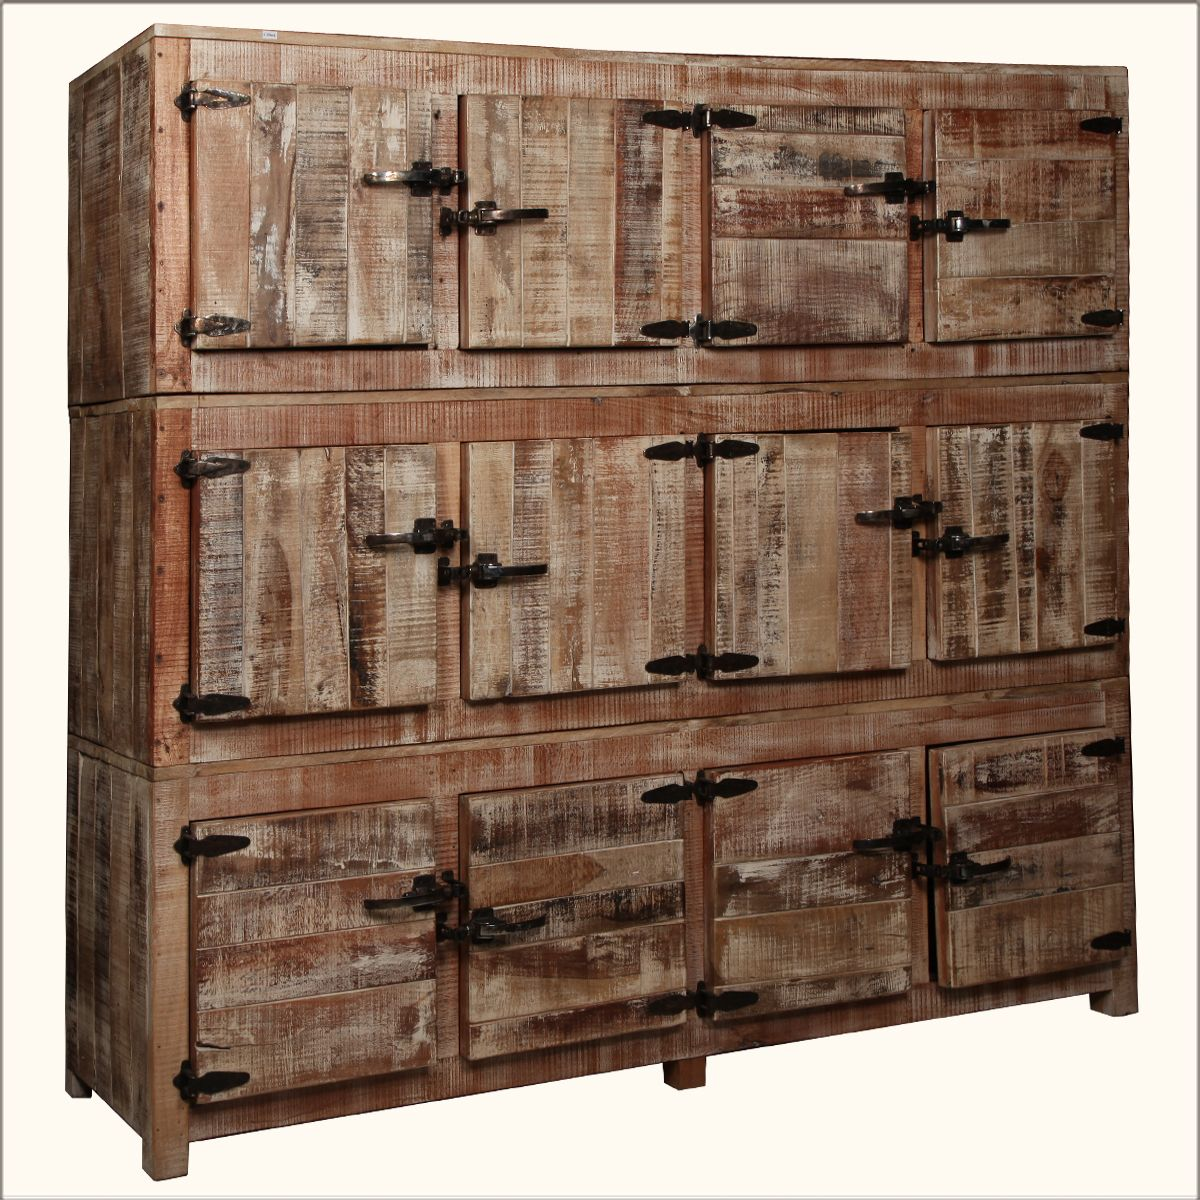 Reclaimed Wood Kitchen Cabinets: Large Rustic Reclaimed Wood 12 Storage Box Wall Unit